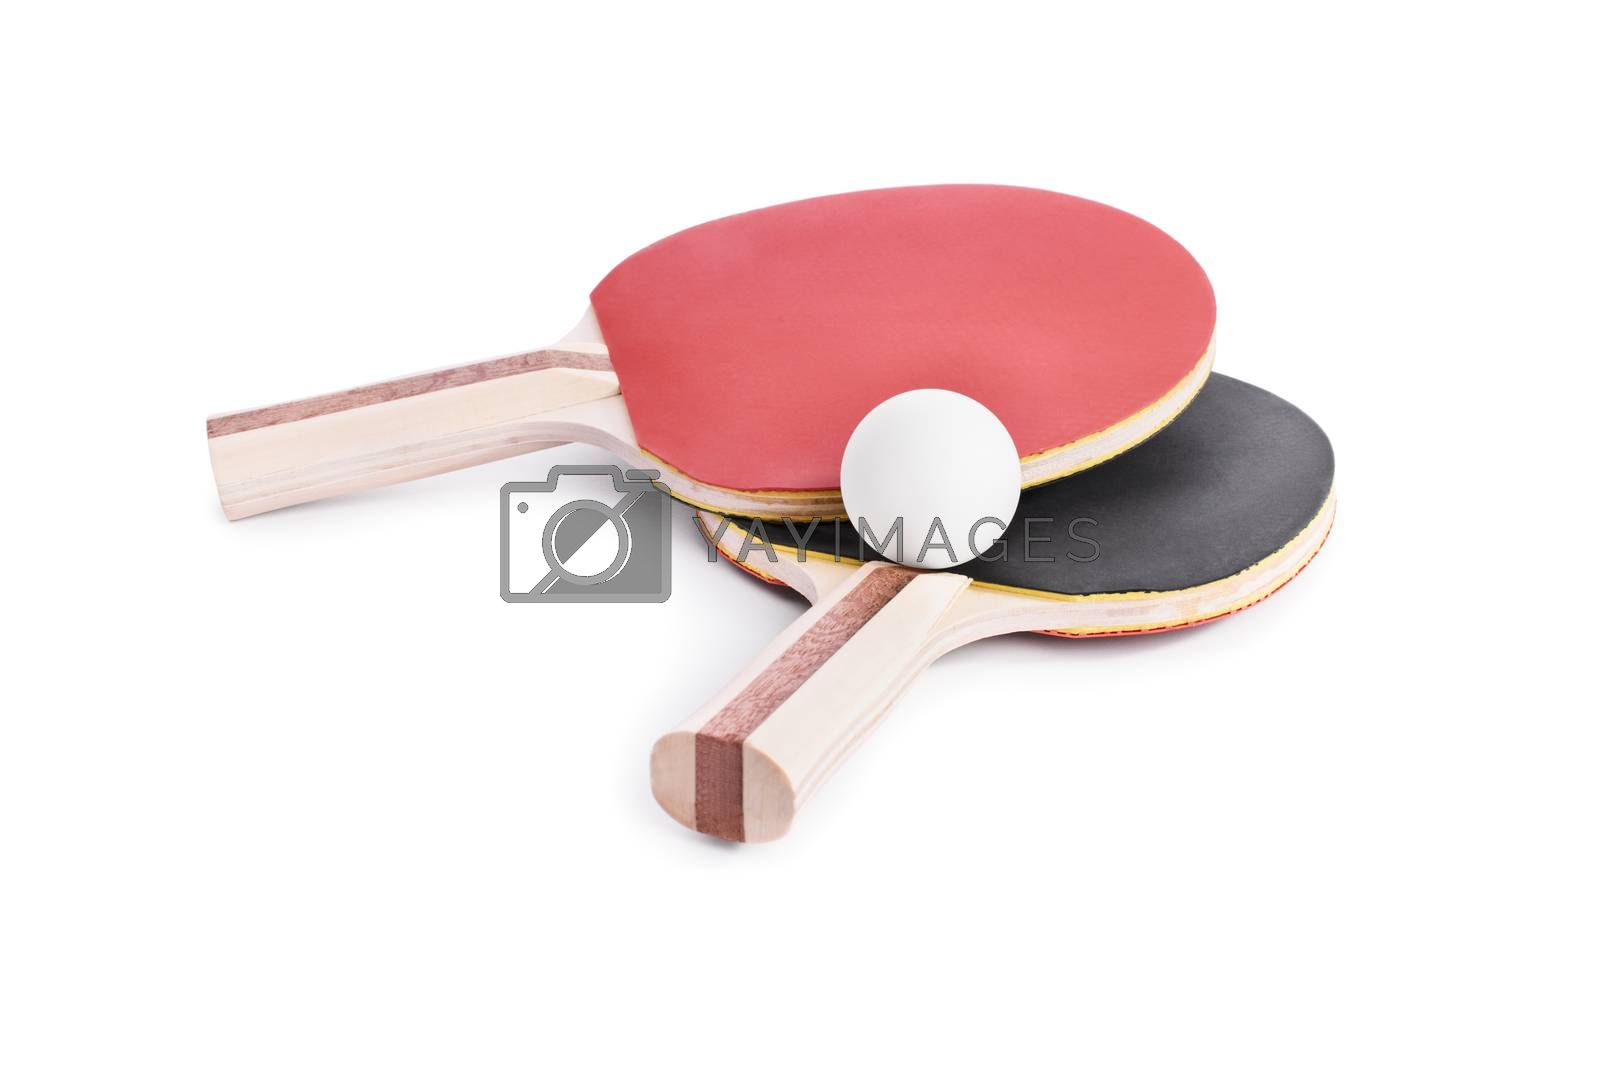 Close-up shot of ping-pong bats with a ball, isolated on white background.